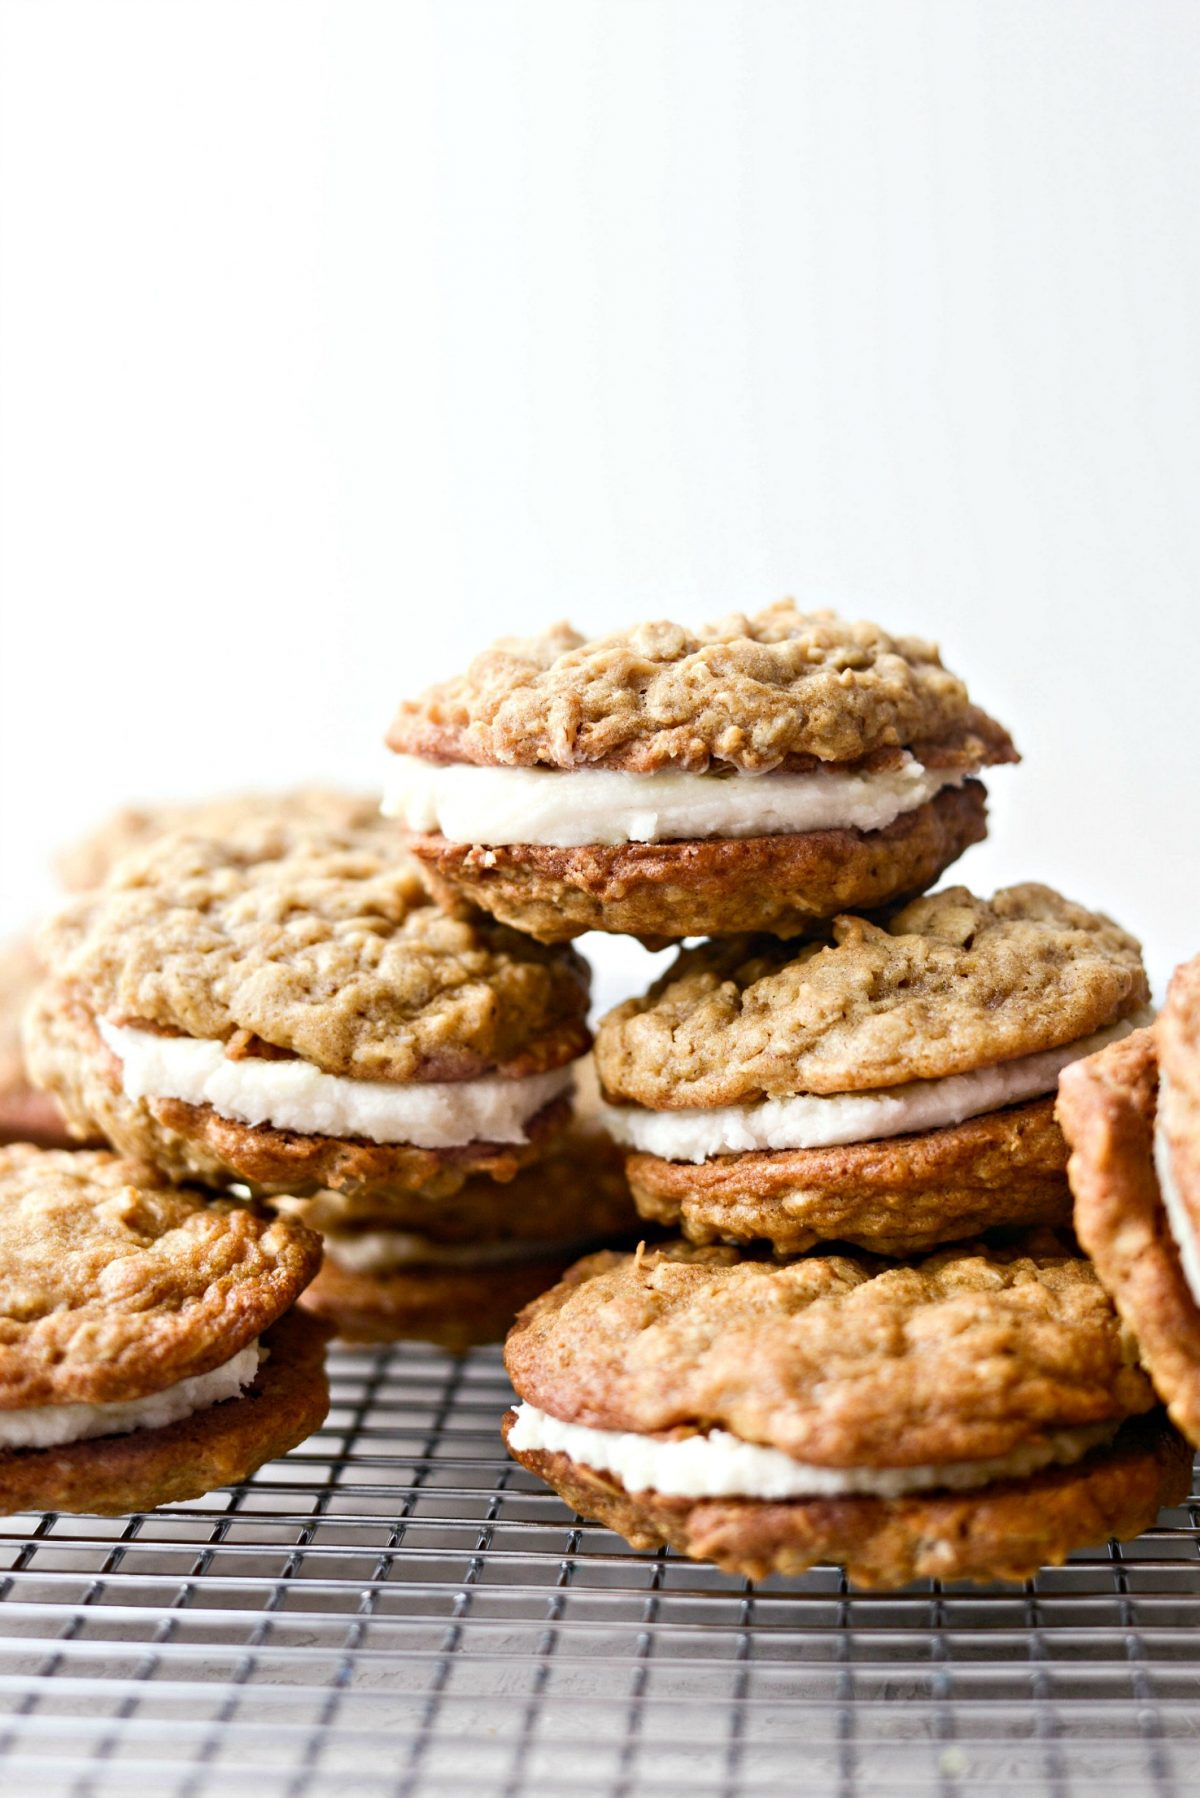 Homemade Oatmeal Cream Pies l SimplyScratch #homemade #oatmeal #creampie #cookies #fromscratch #buttercream #sandwich